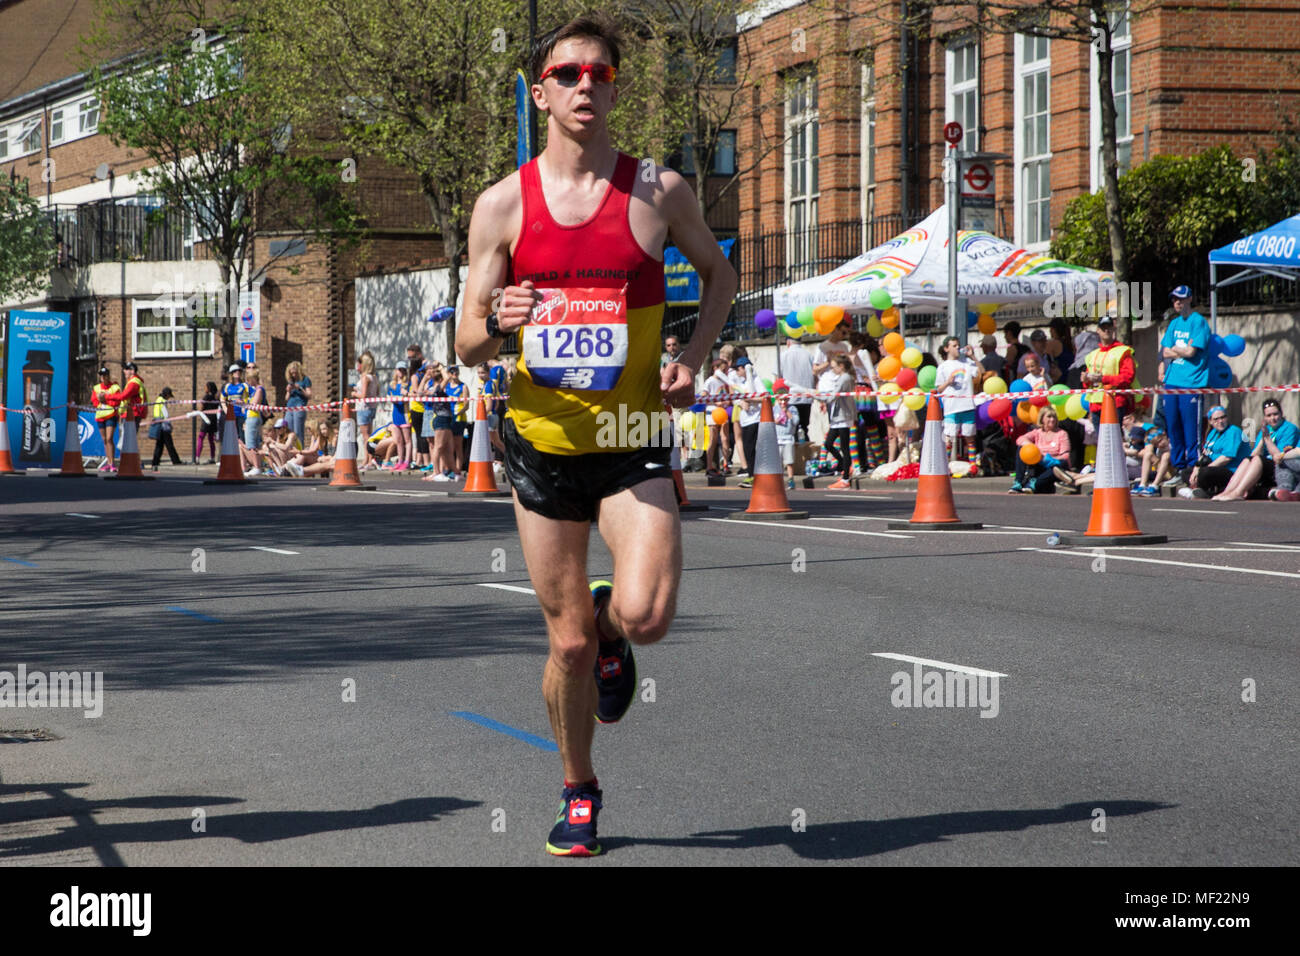 London, UK. 22nd April, 2018. Alex Milne of Enfield and Haringey AC competes in the 2018 Virgin Money London Marathon. The 38th edition of the race was the hottest on record with a temperature of 24.1C recorded in St James's Park. - Stock Image